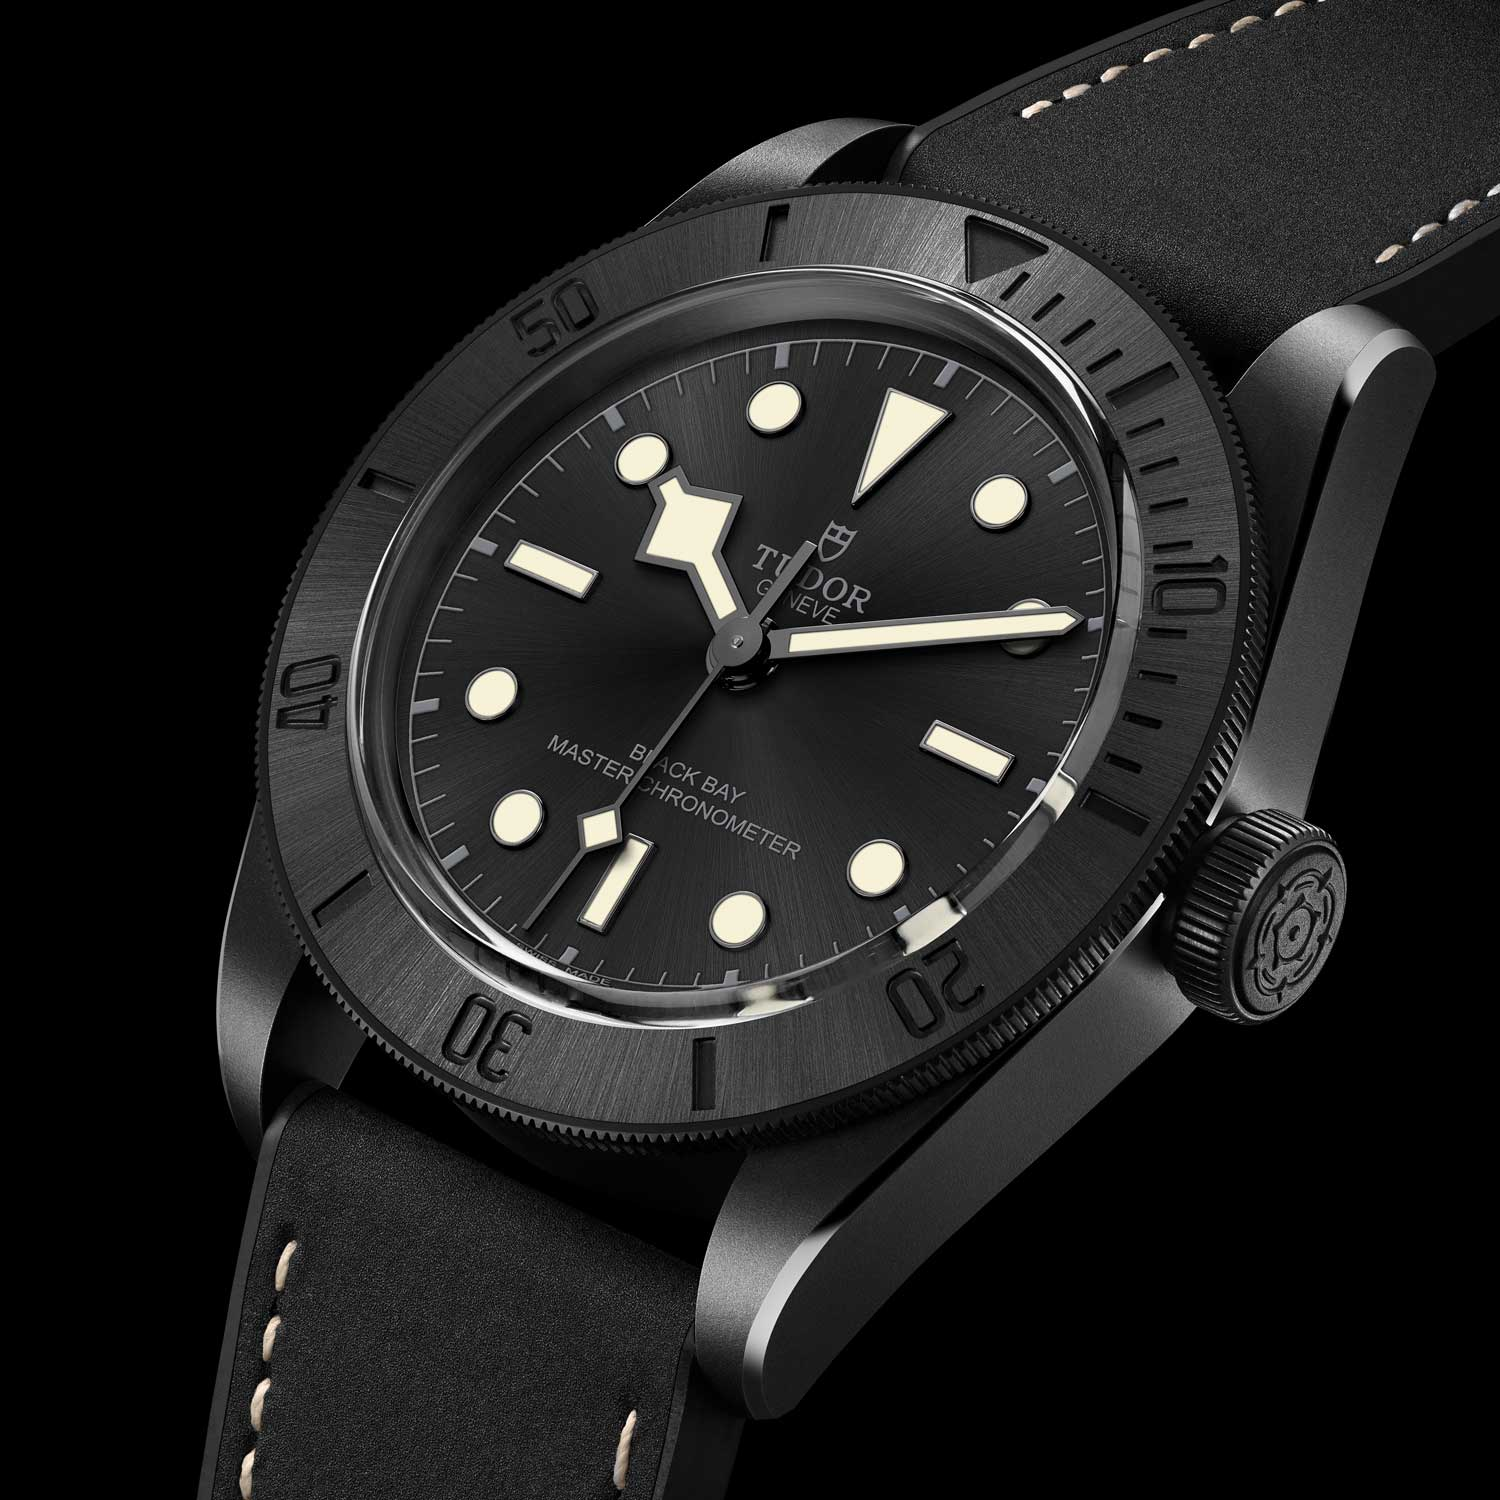 The Tudor Black Bay Ceramic Master Chronometer is the brand's first dive watch with a ceramic case with sandblasted finish, ceramic bezel insert, black dial and a display caseback